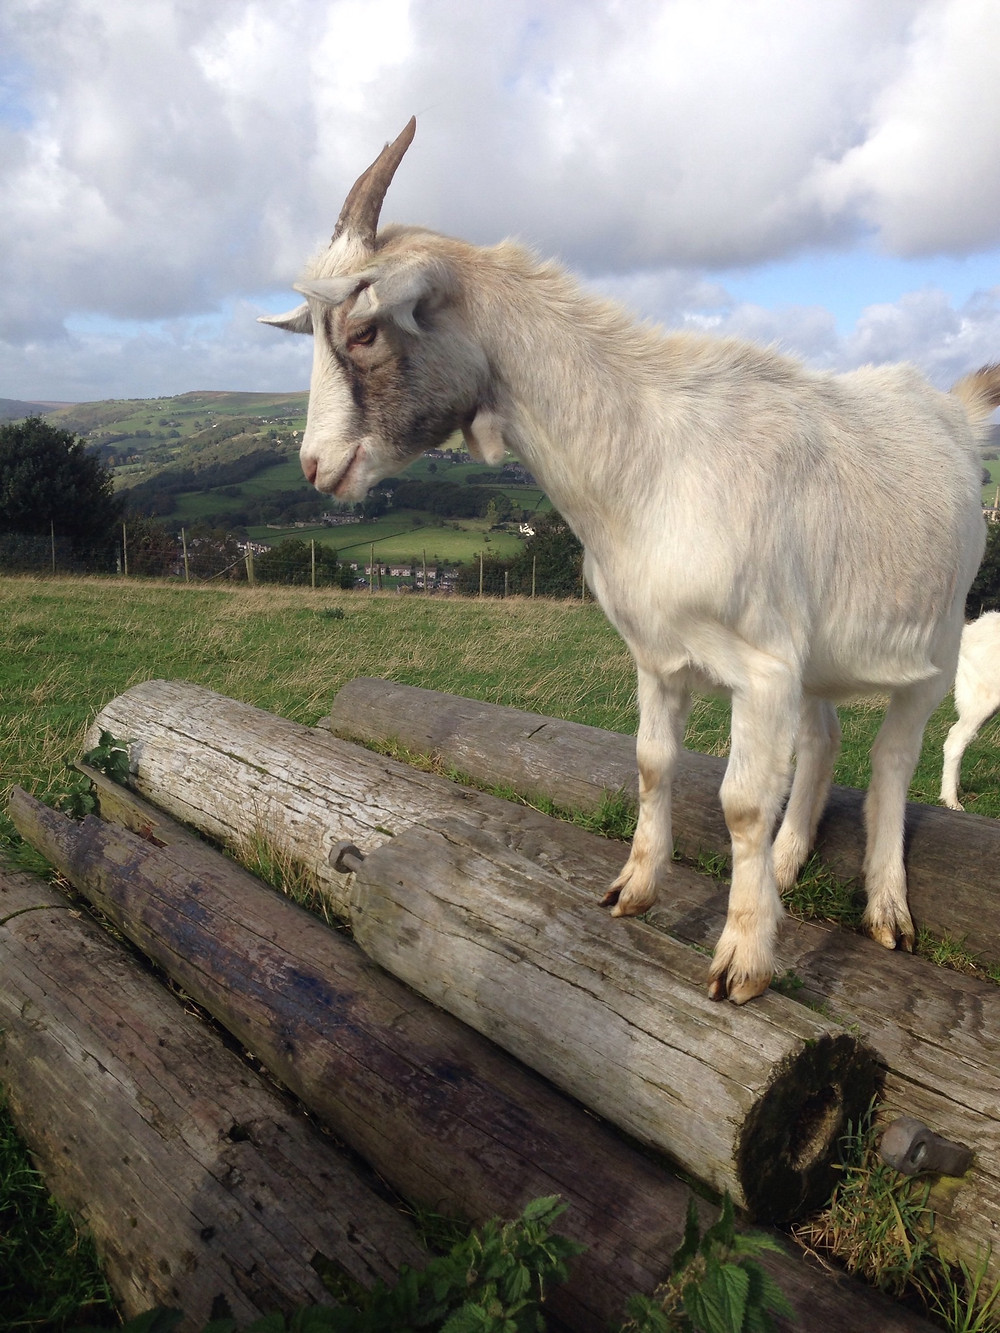 Pigmy goat rescued and safein her new home